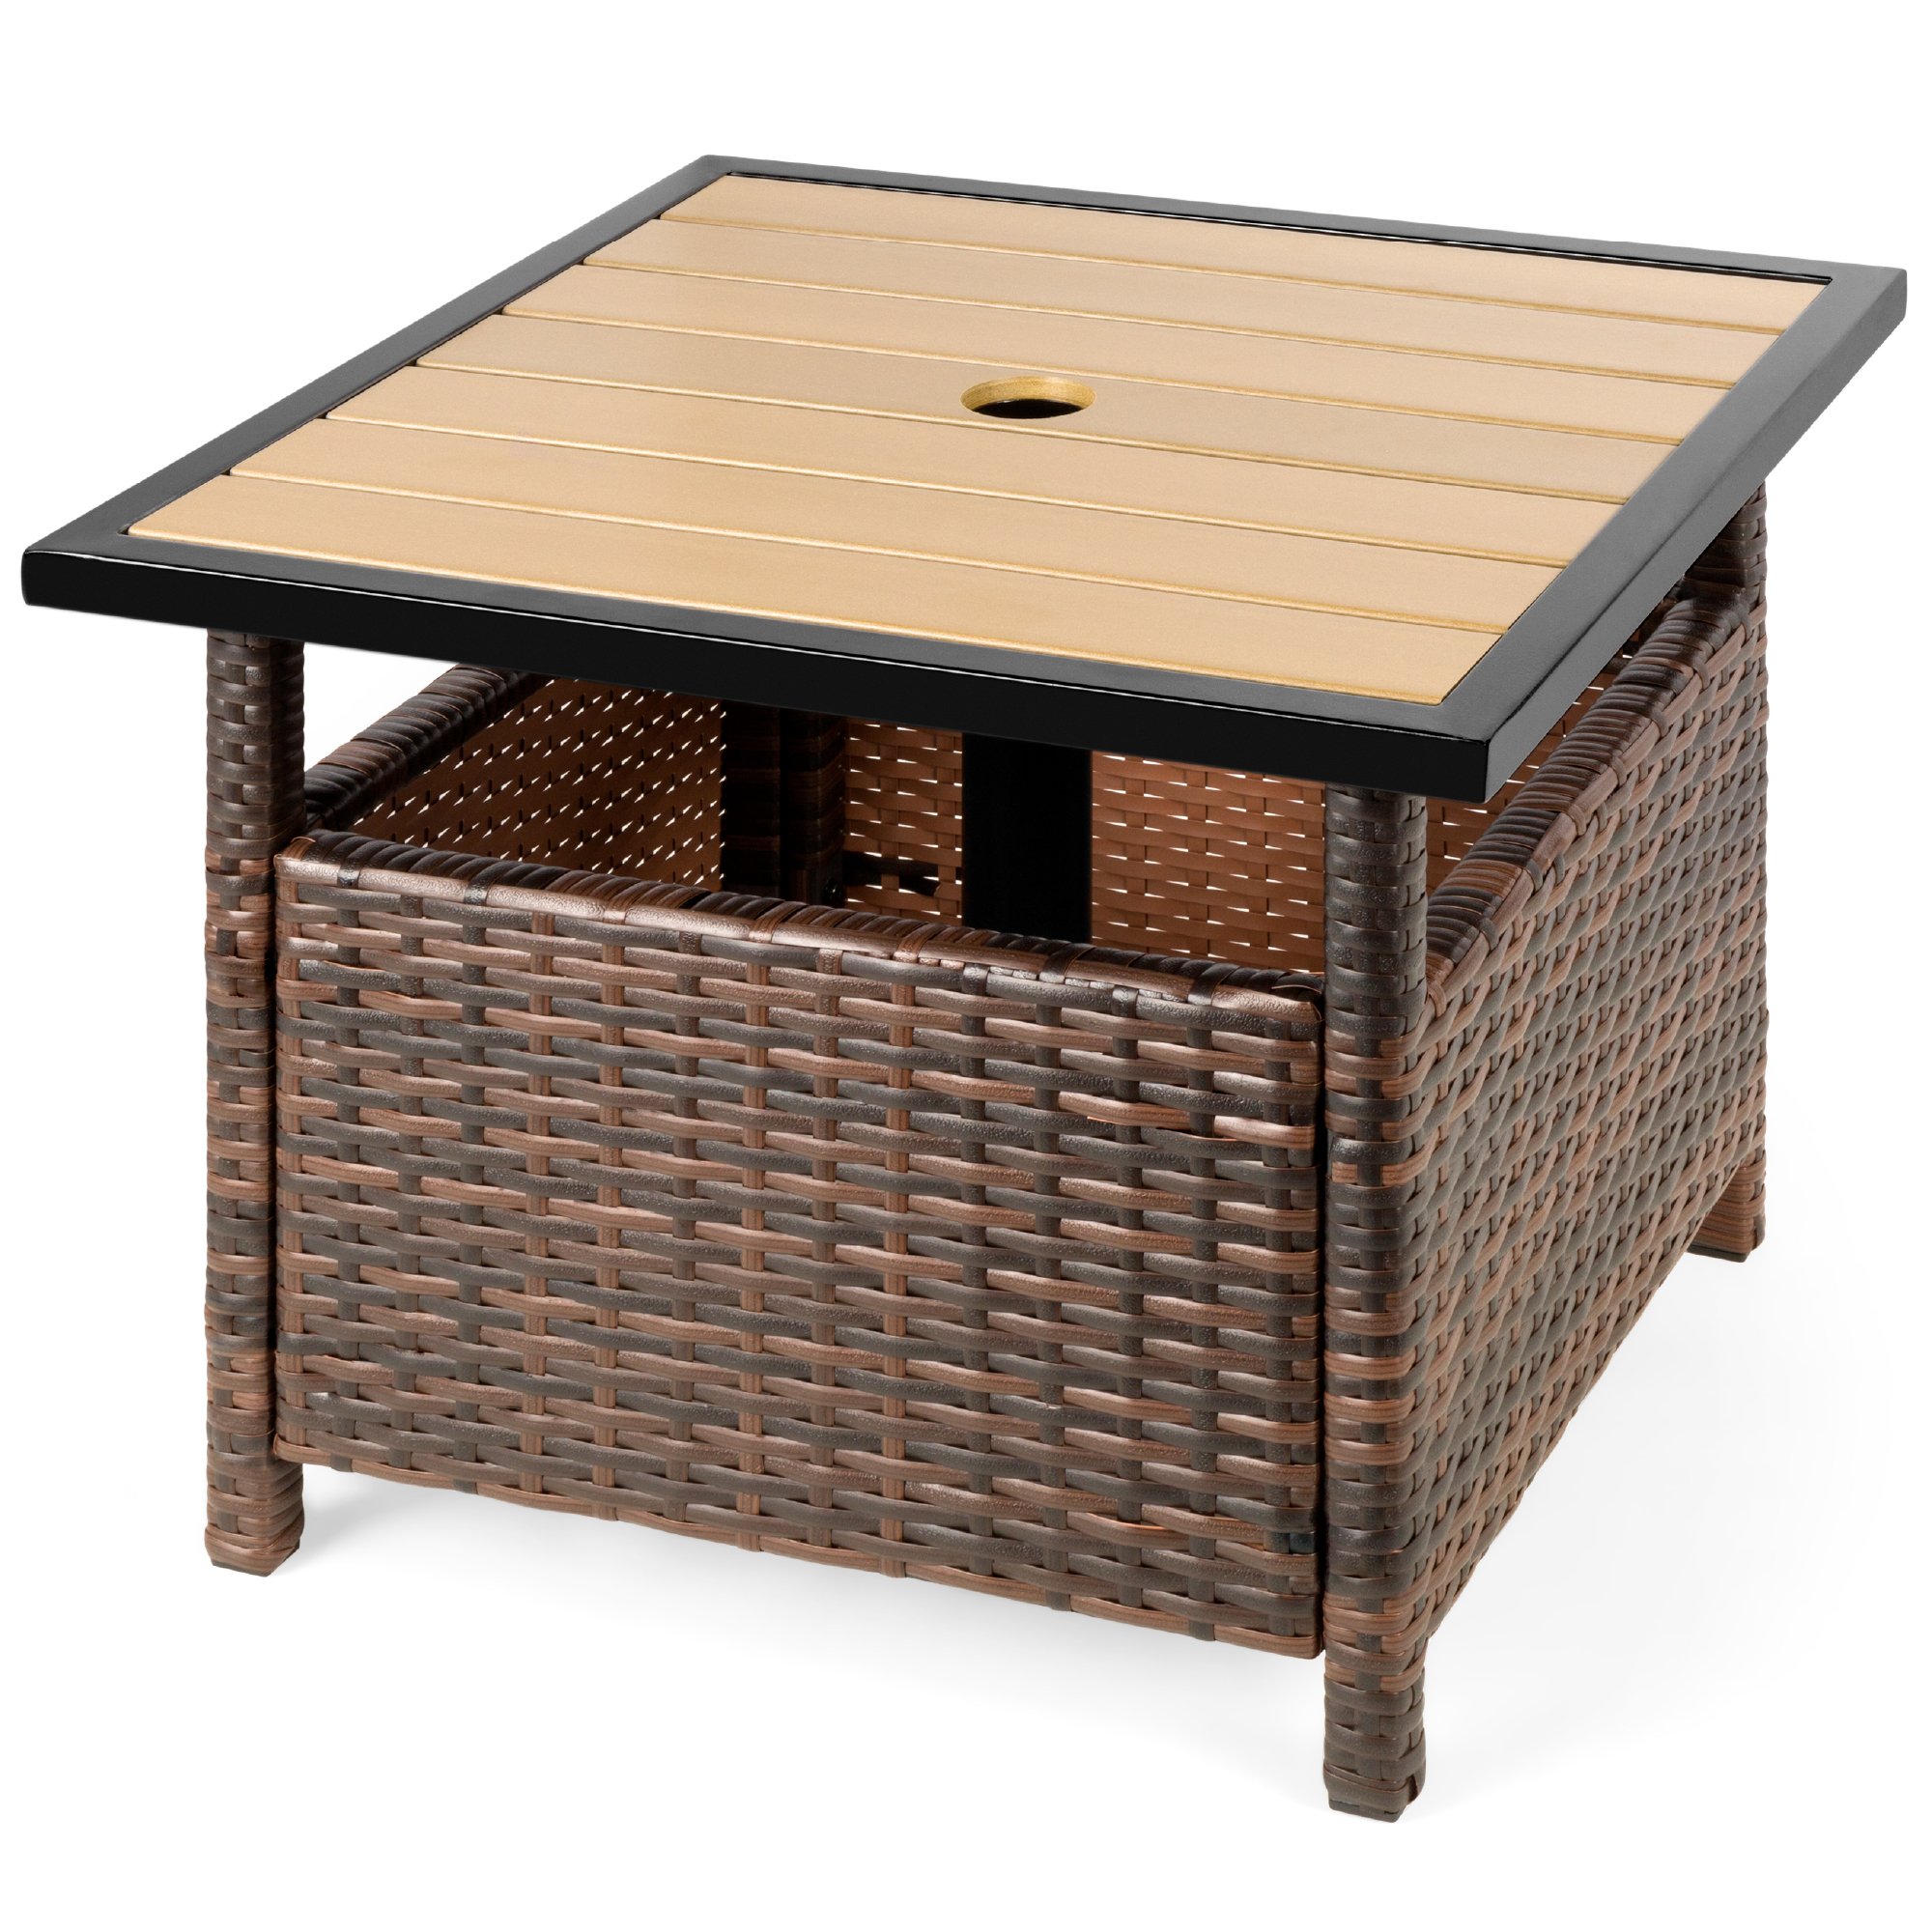 best choice products wicker rattan patio side table outdoor furniture for garden pool deck w umbrella hole brown